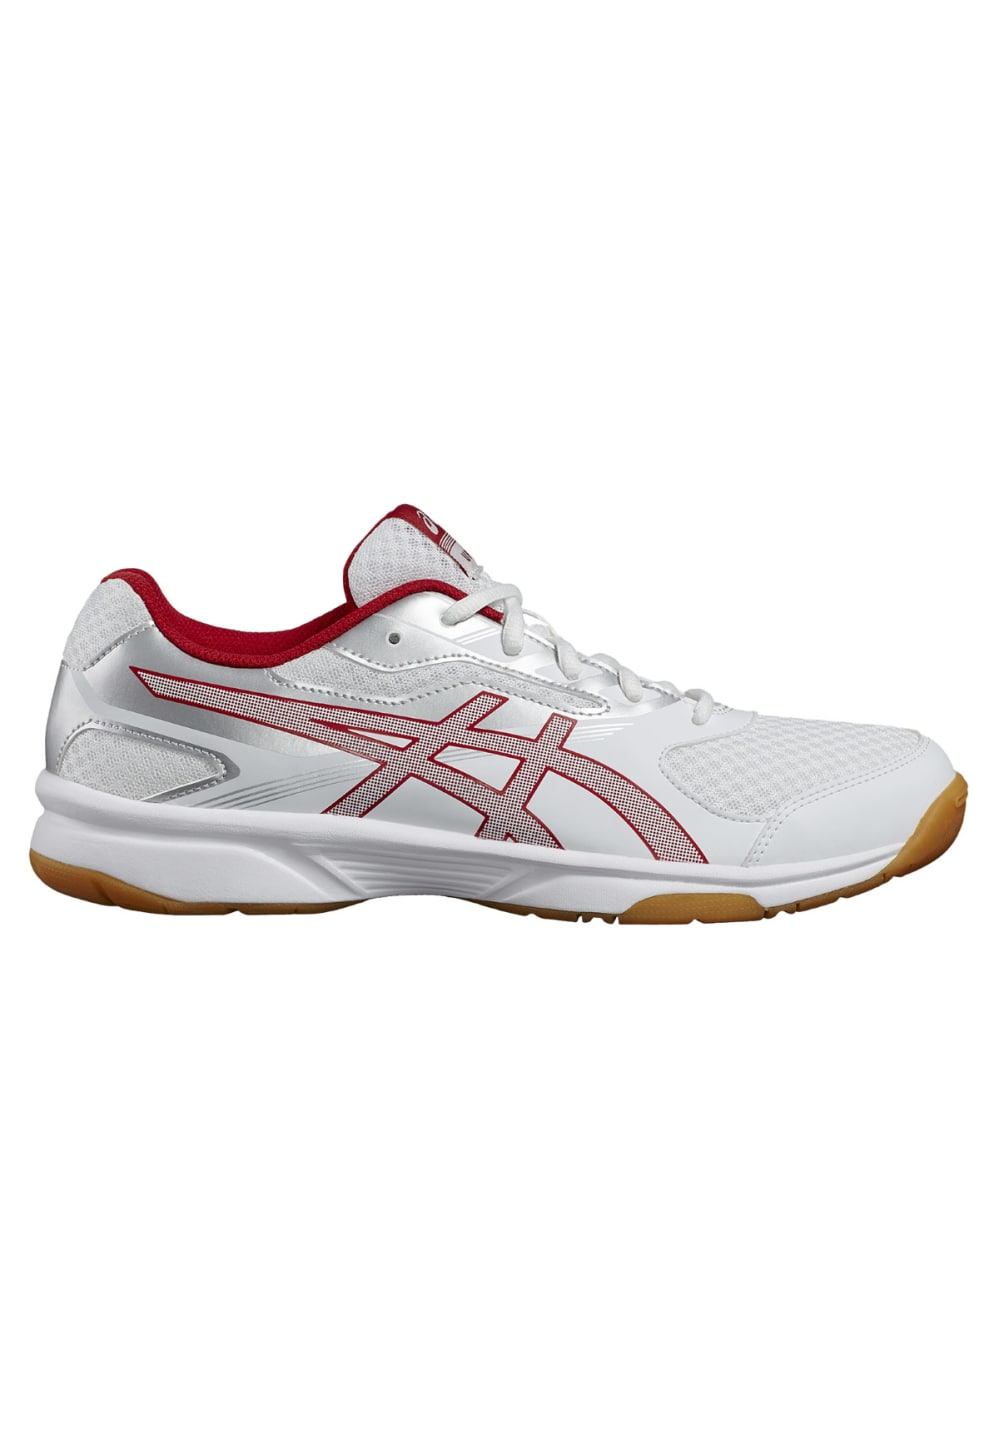 ASICS Upcourt 2 - Volleyball shoes for Men - White  1fb443c6bc